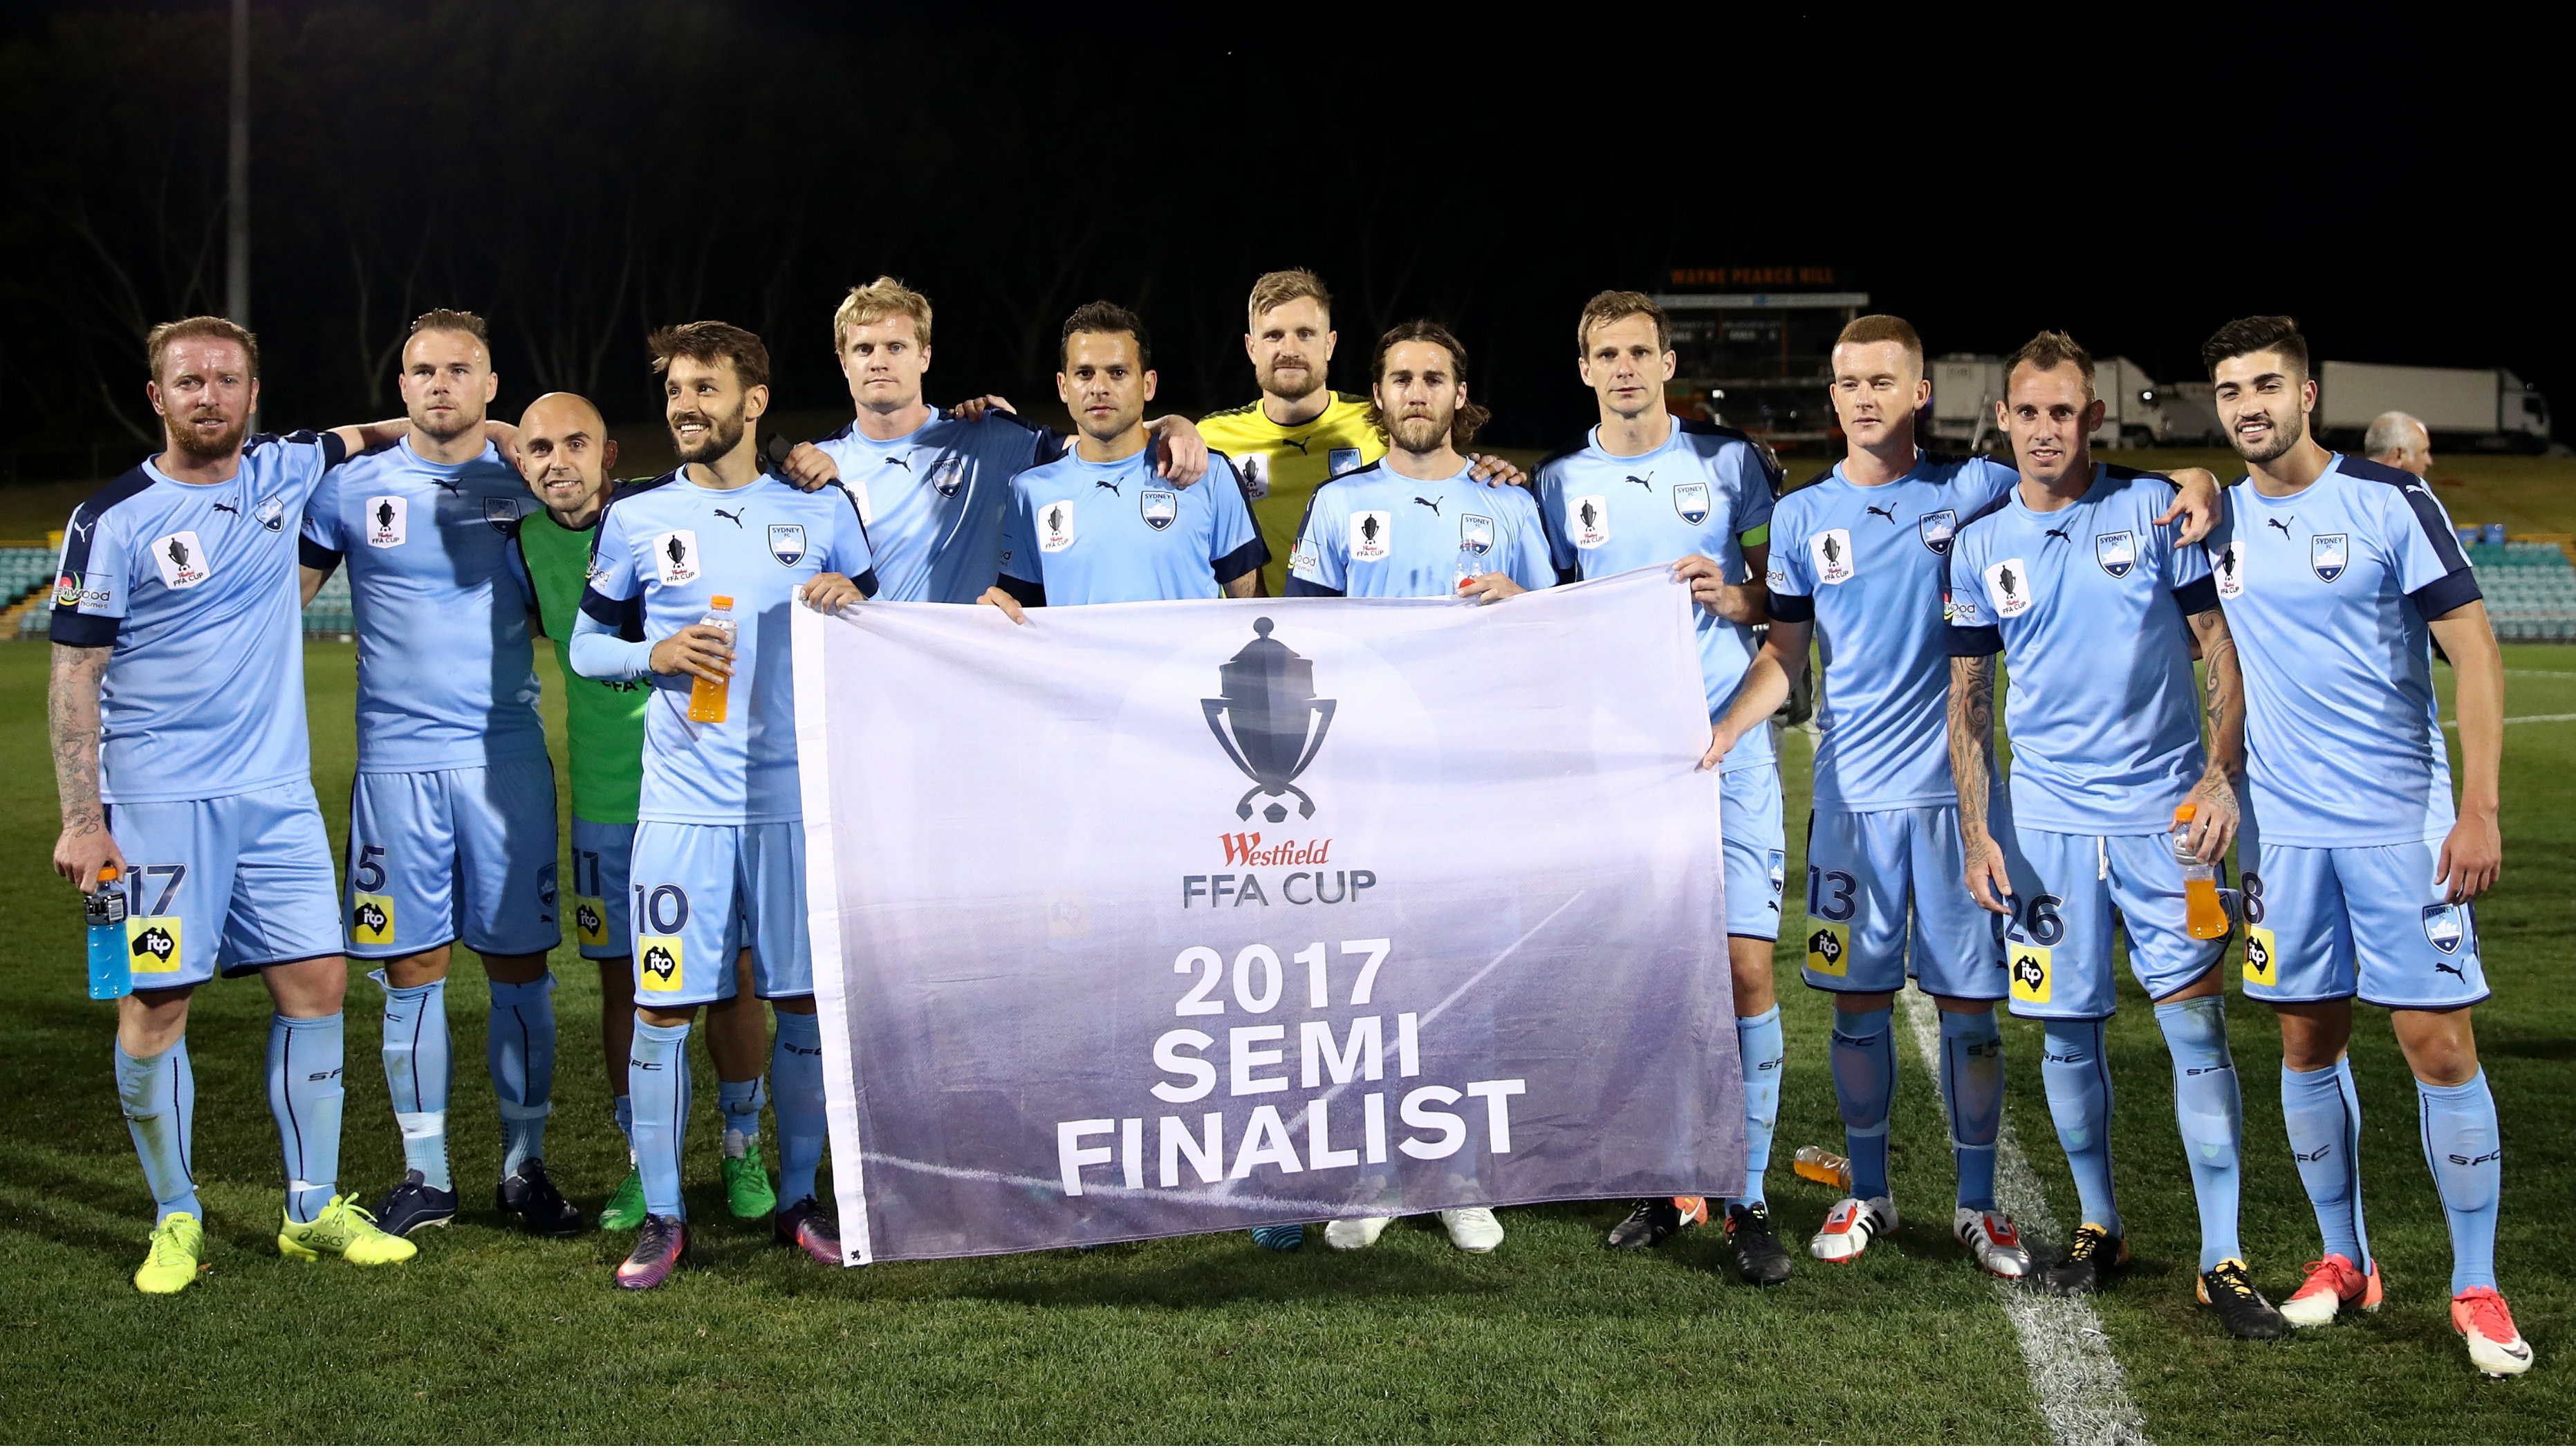 Sydney FC cruised into the FFA Cup Semi Finals with a 2-0 win over Melbourne City.